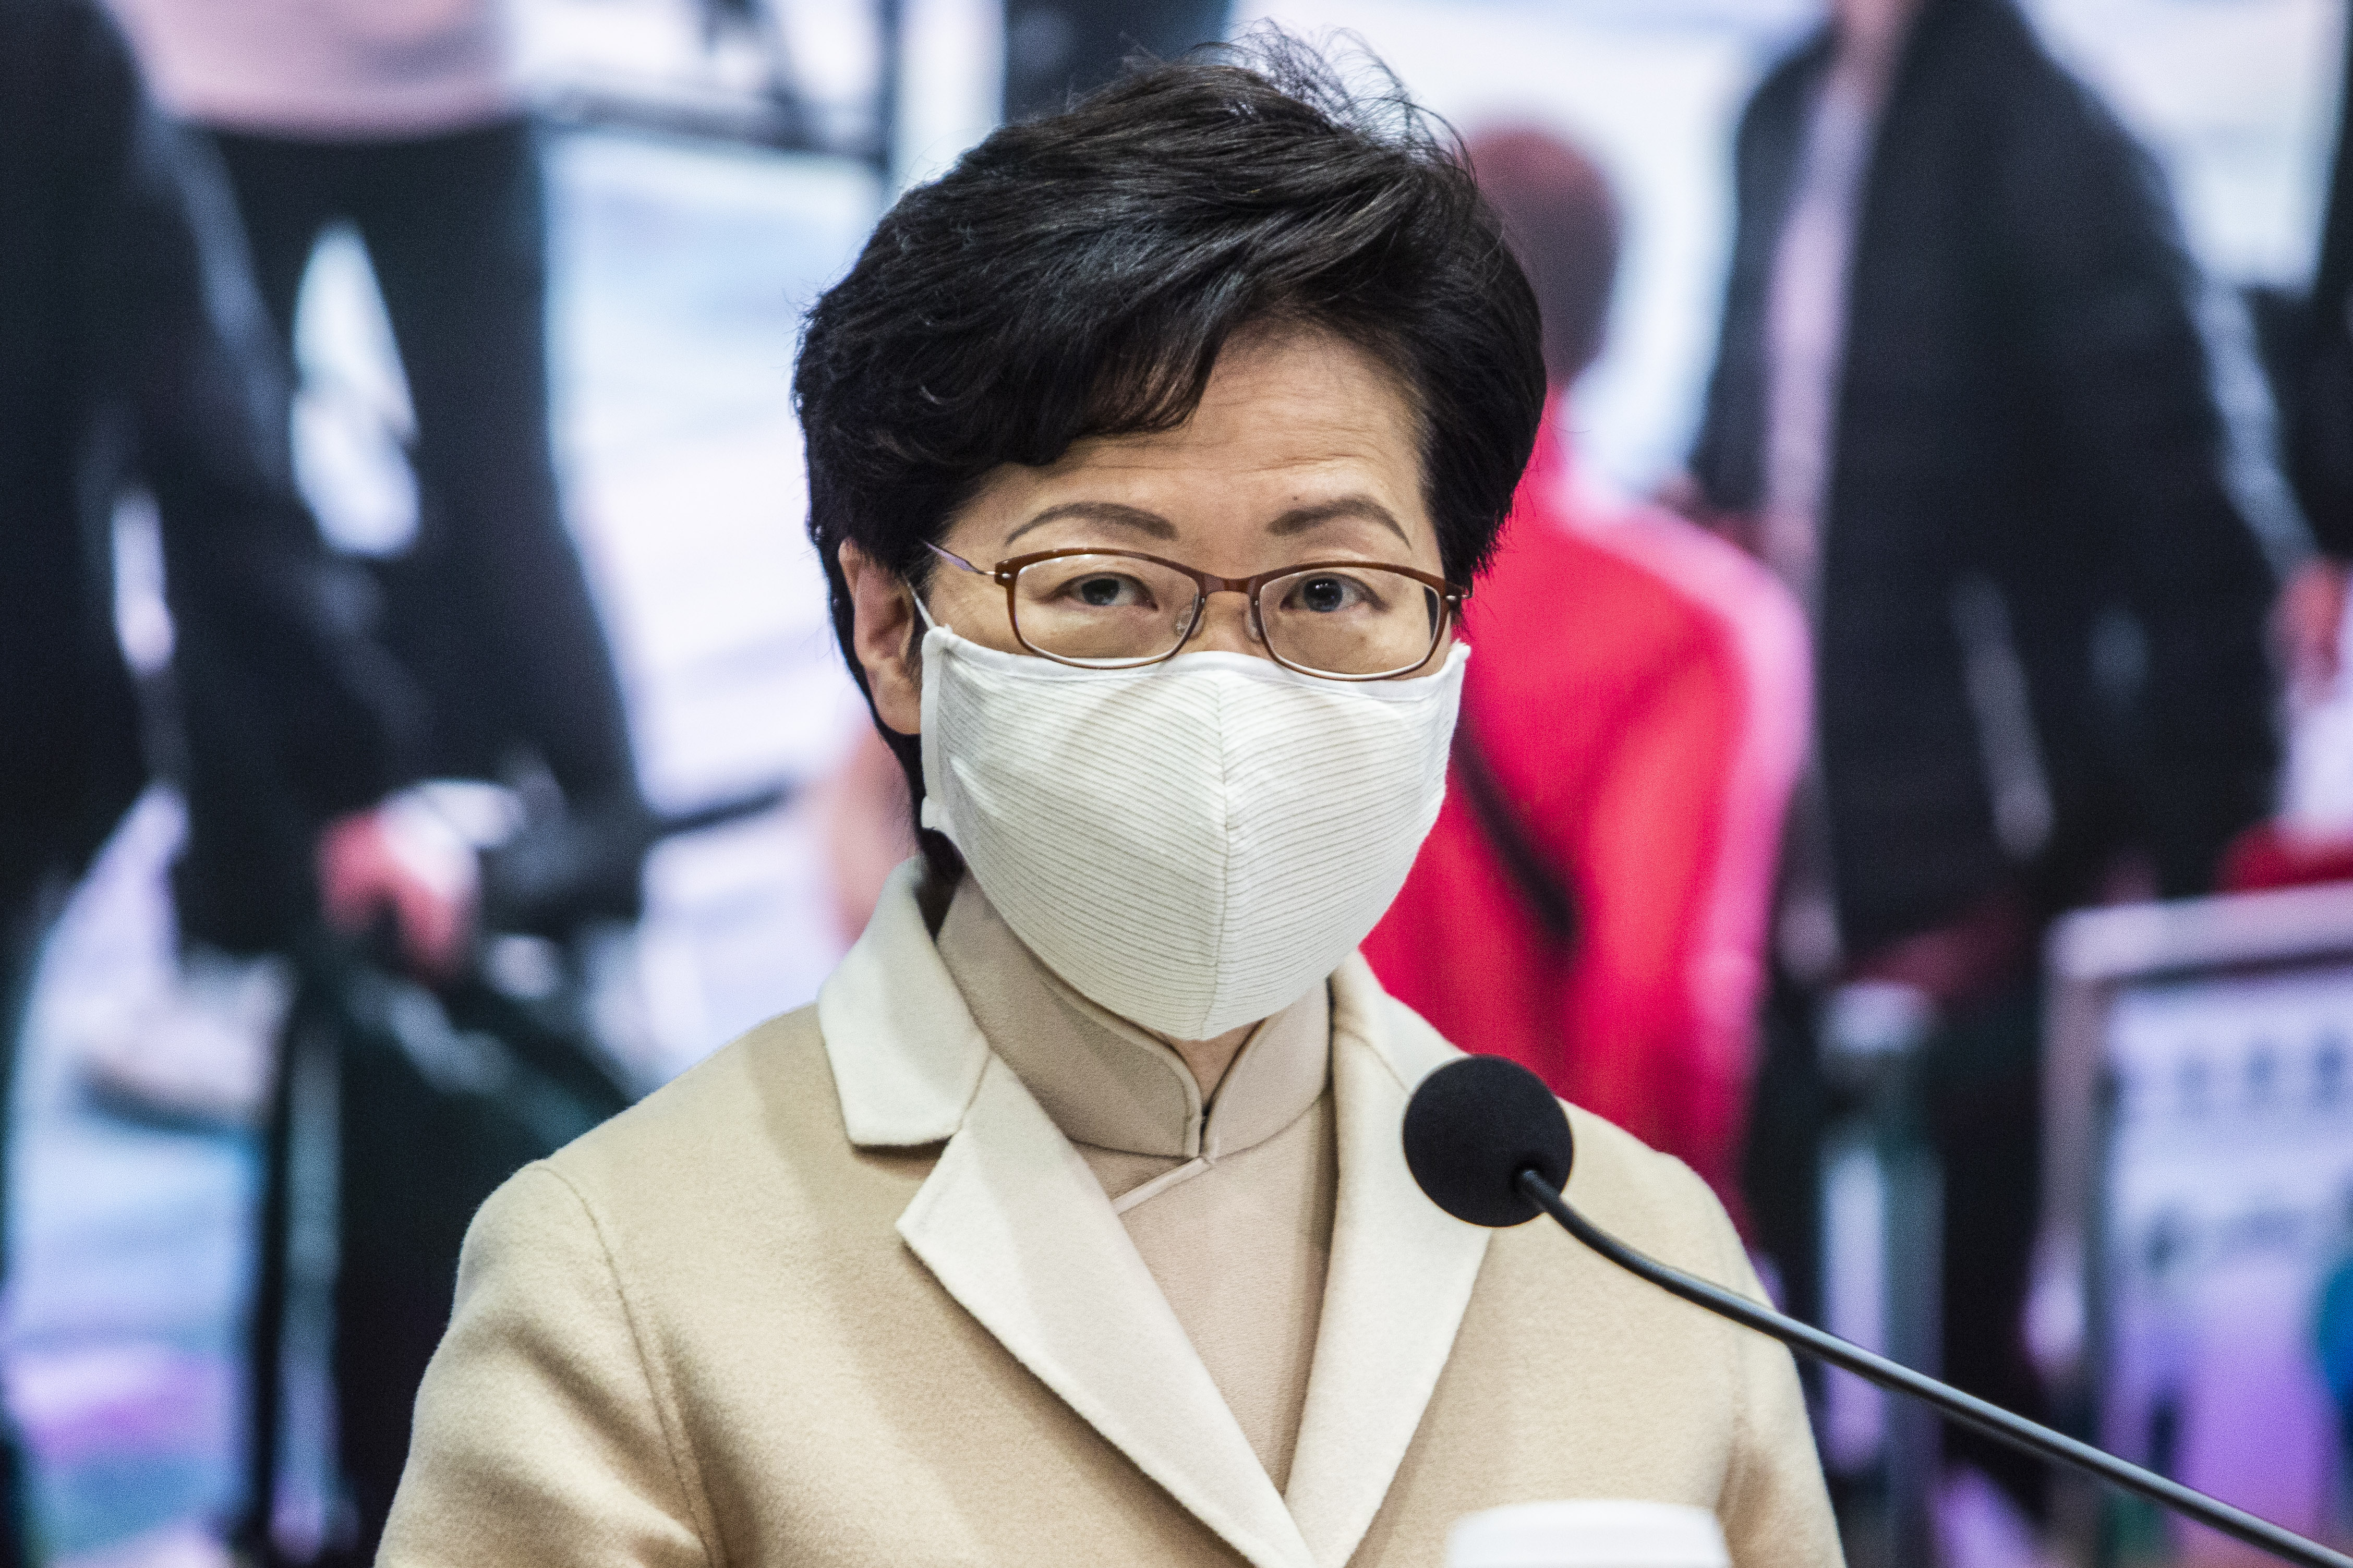 HKSAR chief executive urges Hong Kong residents to actively get COVID-19 vaccine